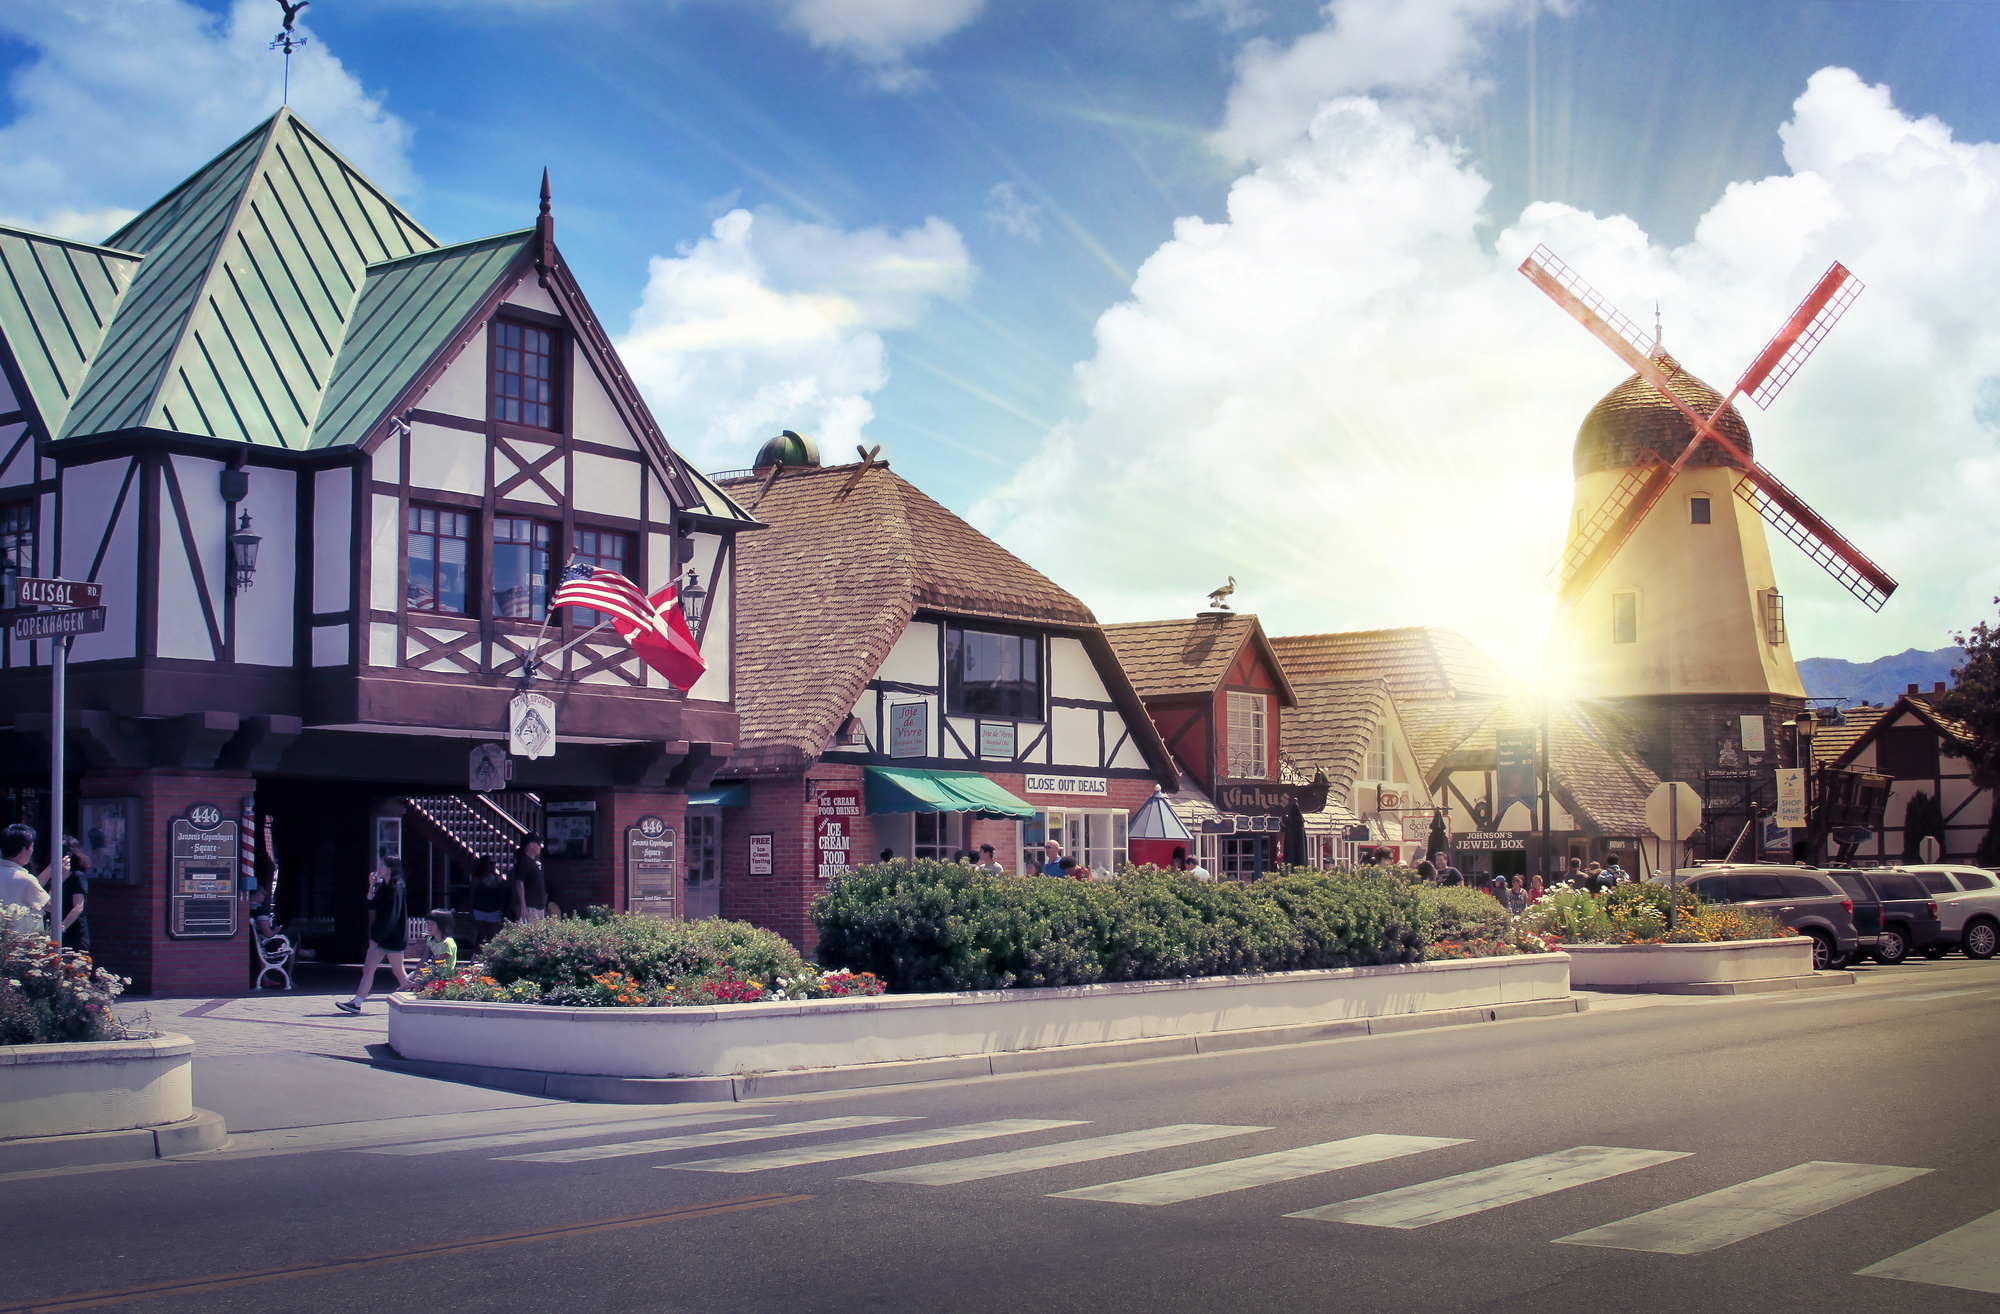 Wine and a Danish: What to Do in Solvang, California